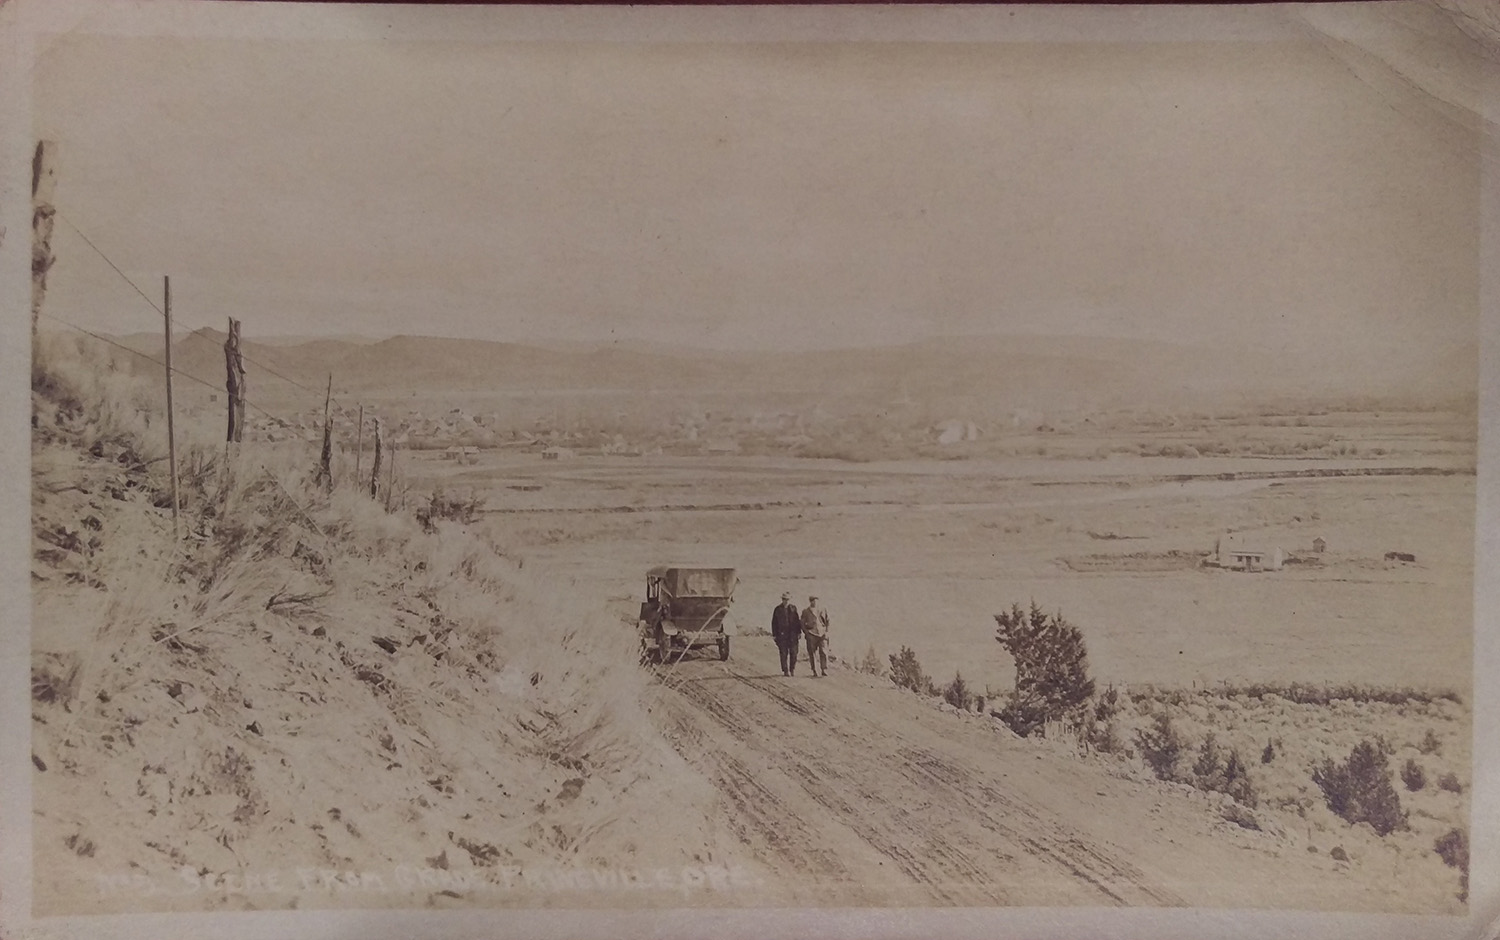 Postcard image of the grade west of Prineville, c. 1910.